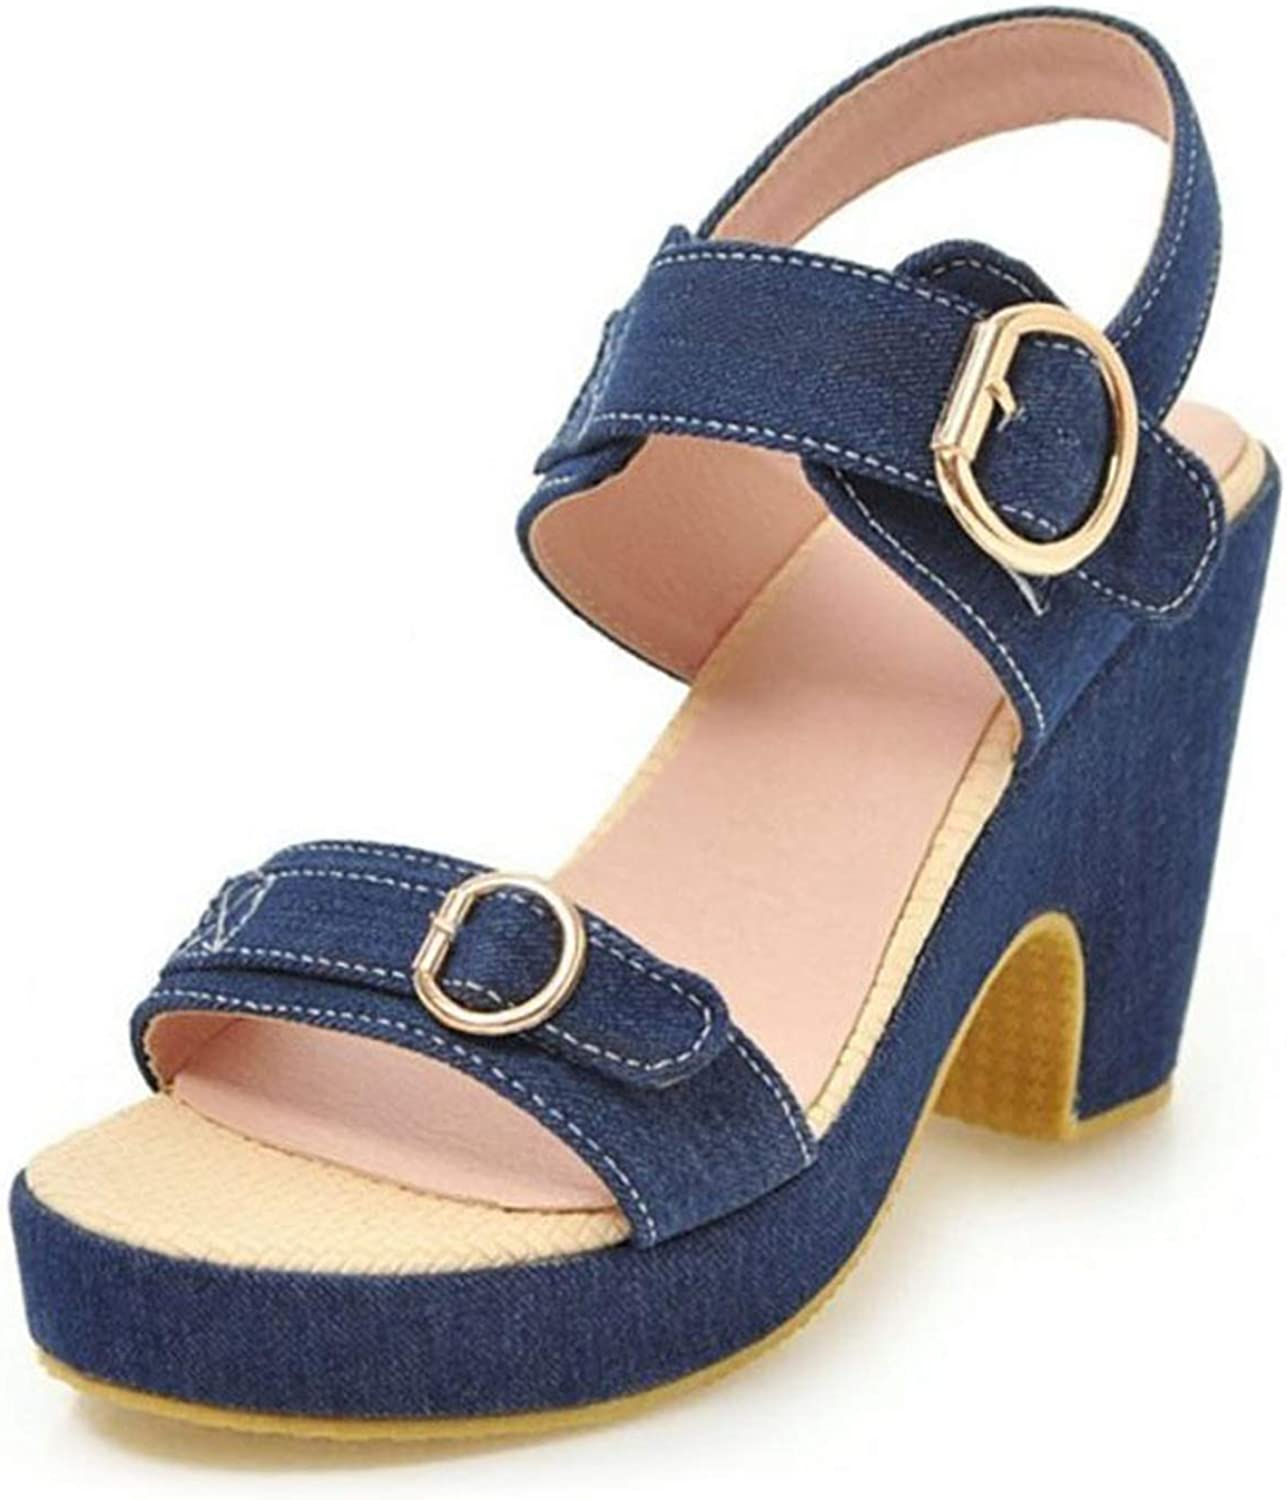 Hiviay Women Sandals Summer Breathable Thick High Heels shoes Open Toe Buckle